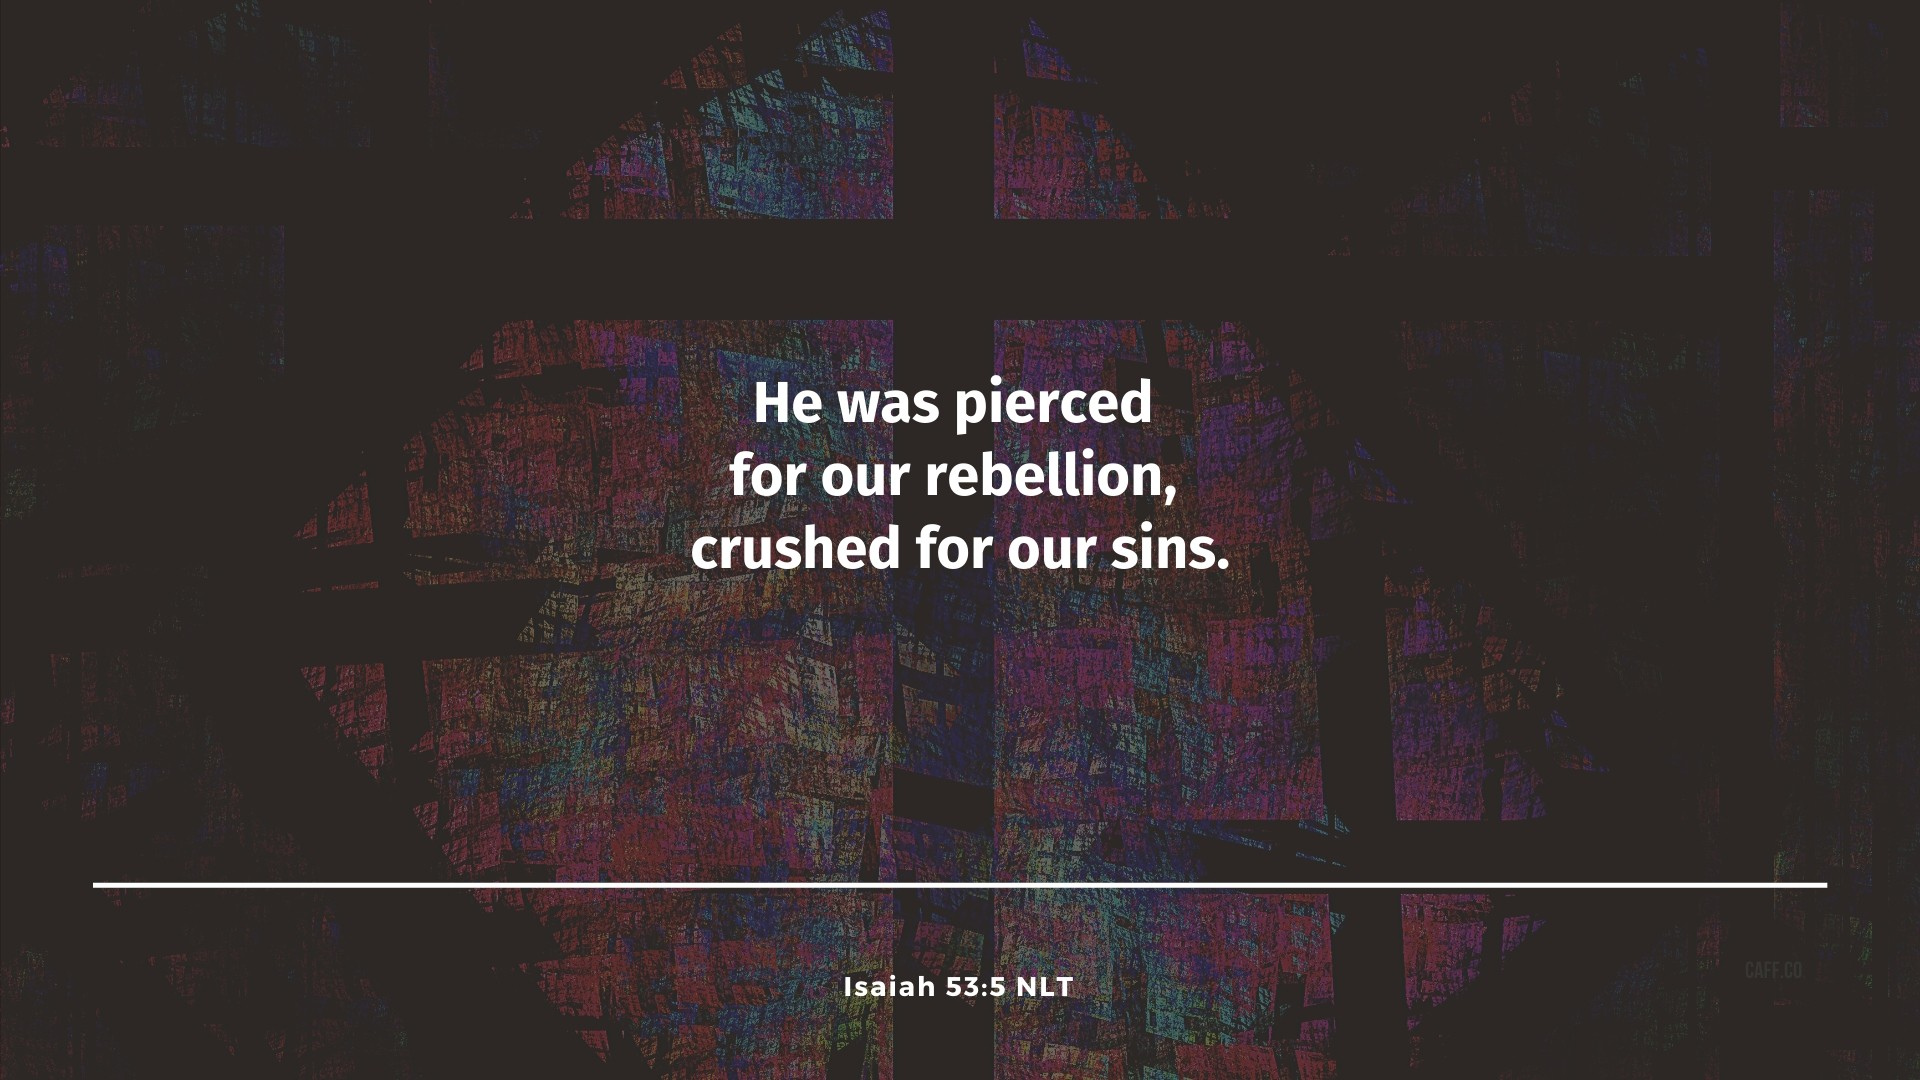 Crushed for Our Sins